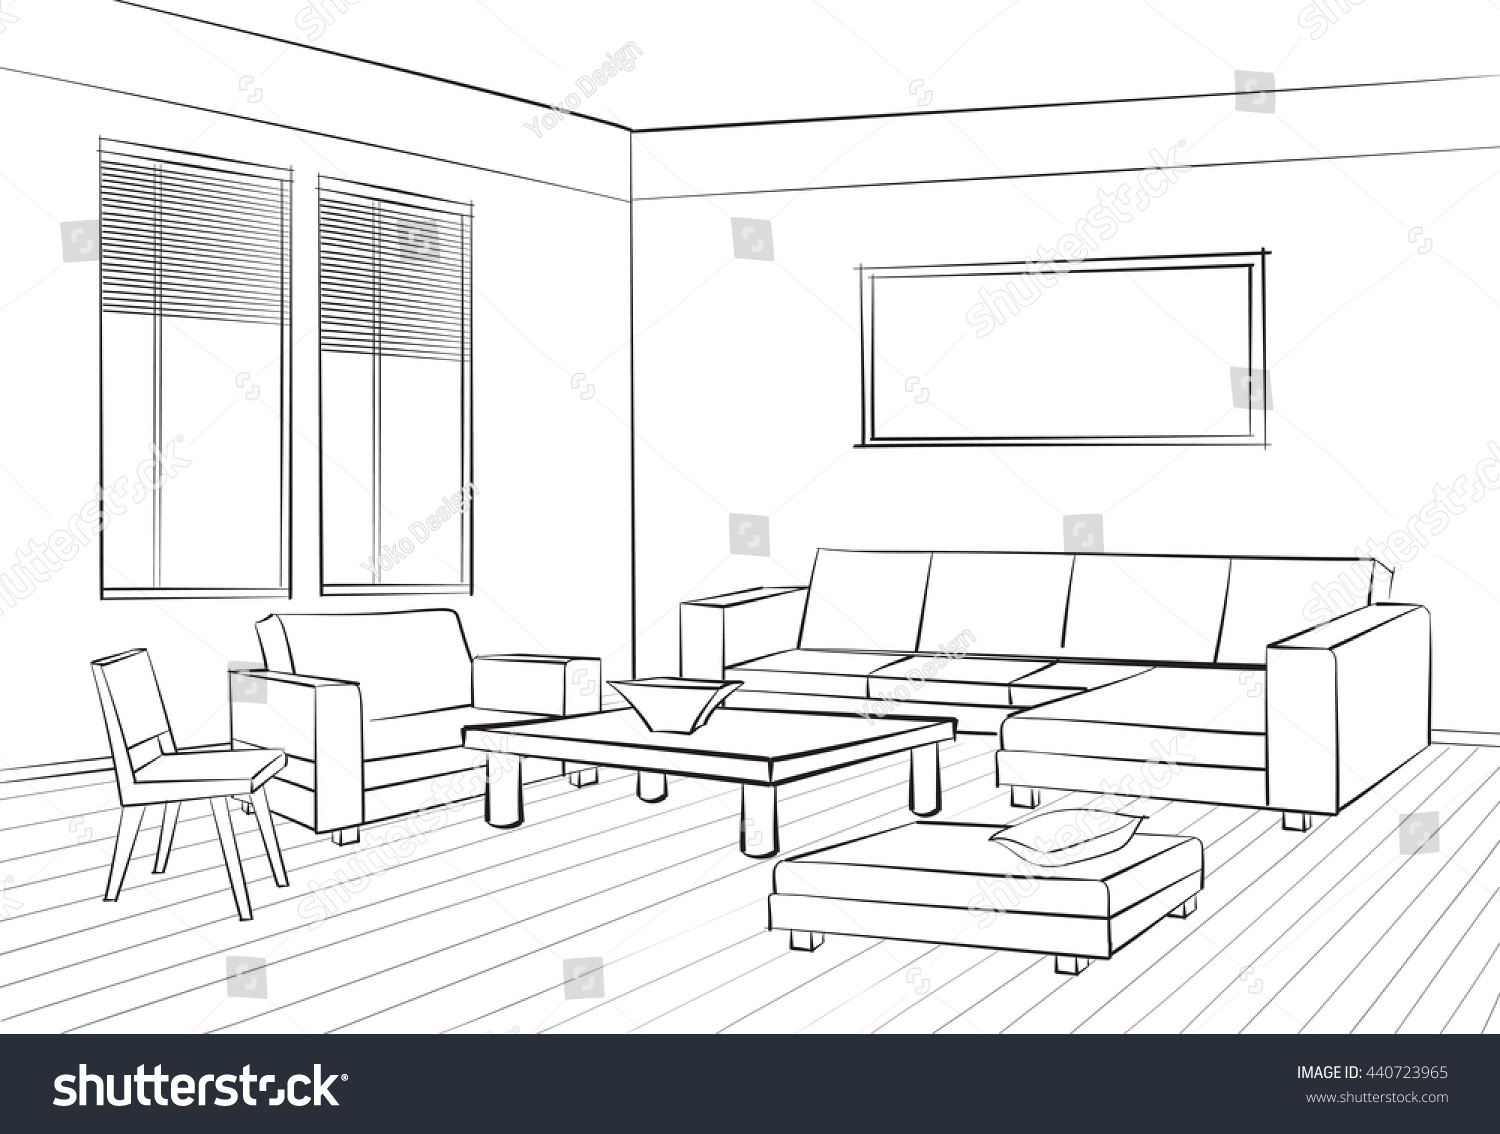 Home Interior Furniture Sofa Armchair Table Stock Vector 440723965 Shutterstock